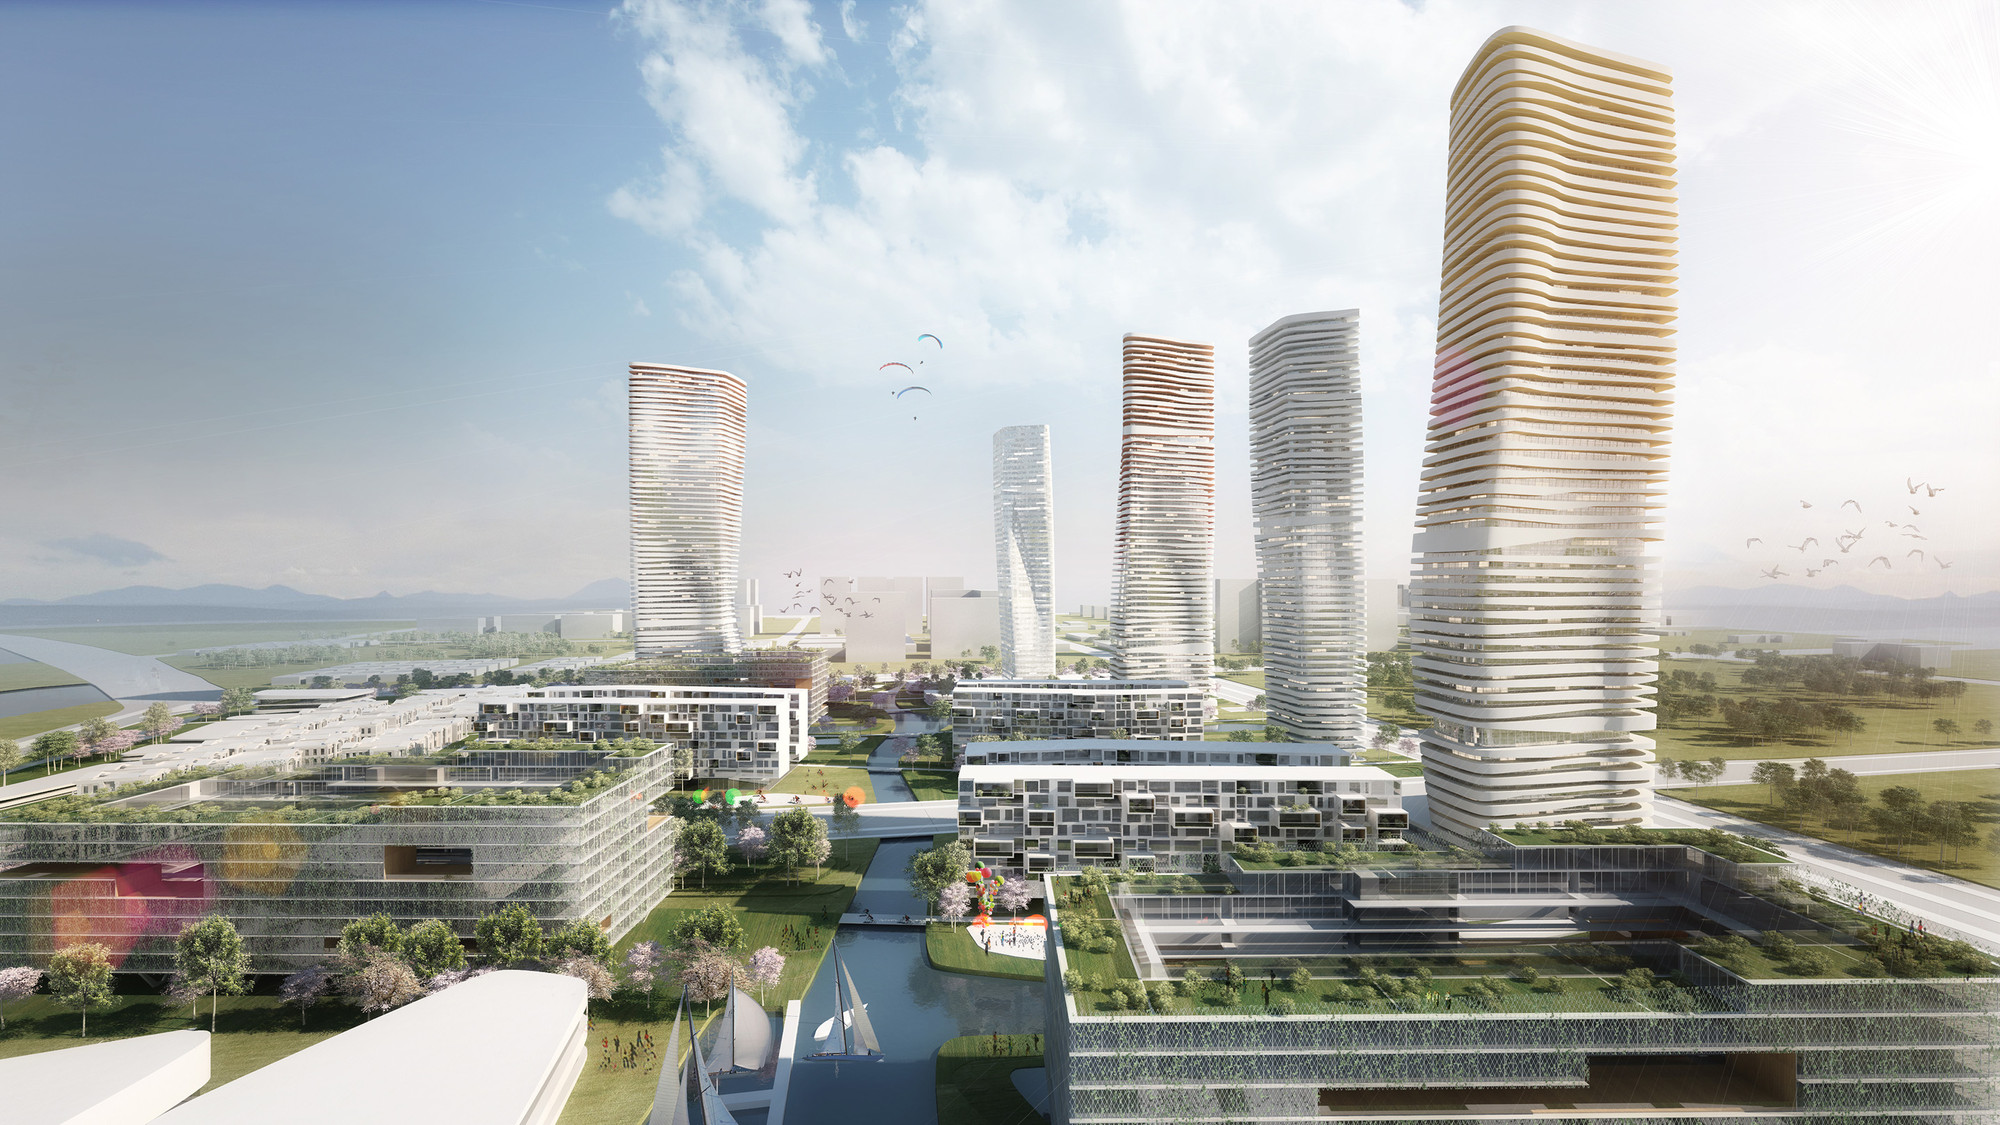 Wuxi Masterplan: Mixed Use Building Complex Proposal / ATENASTUDIO, © ATENASTUDIO